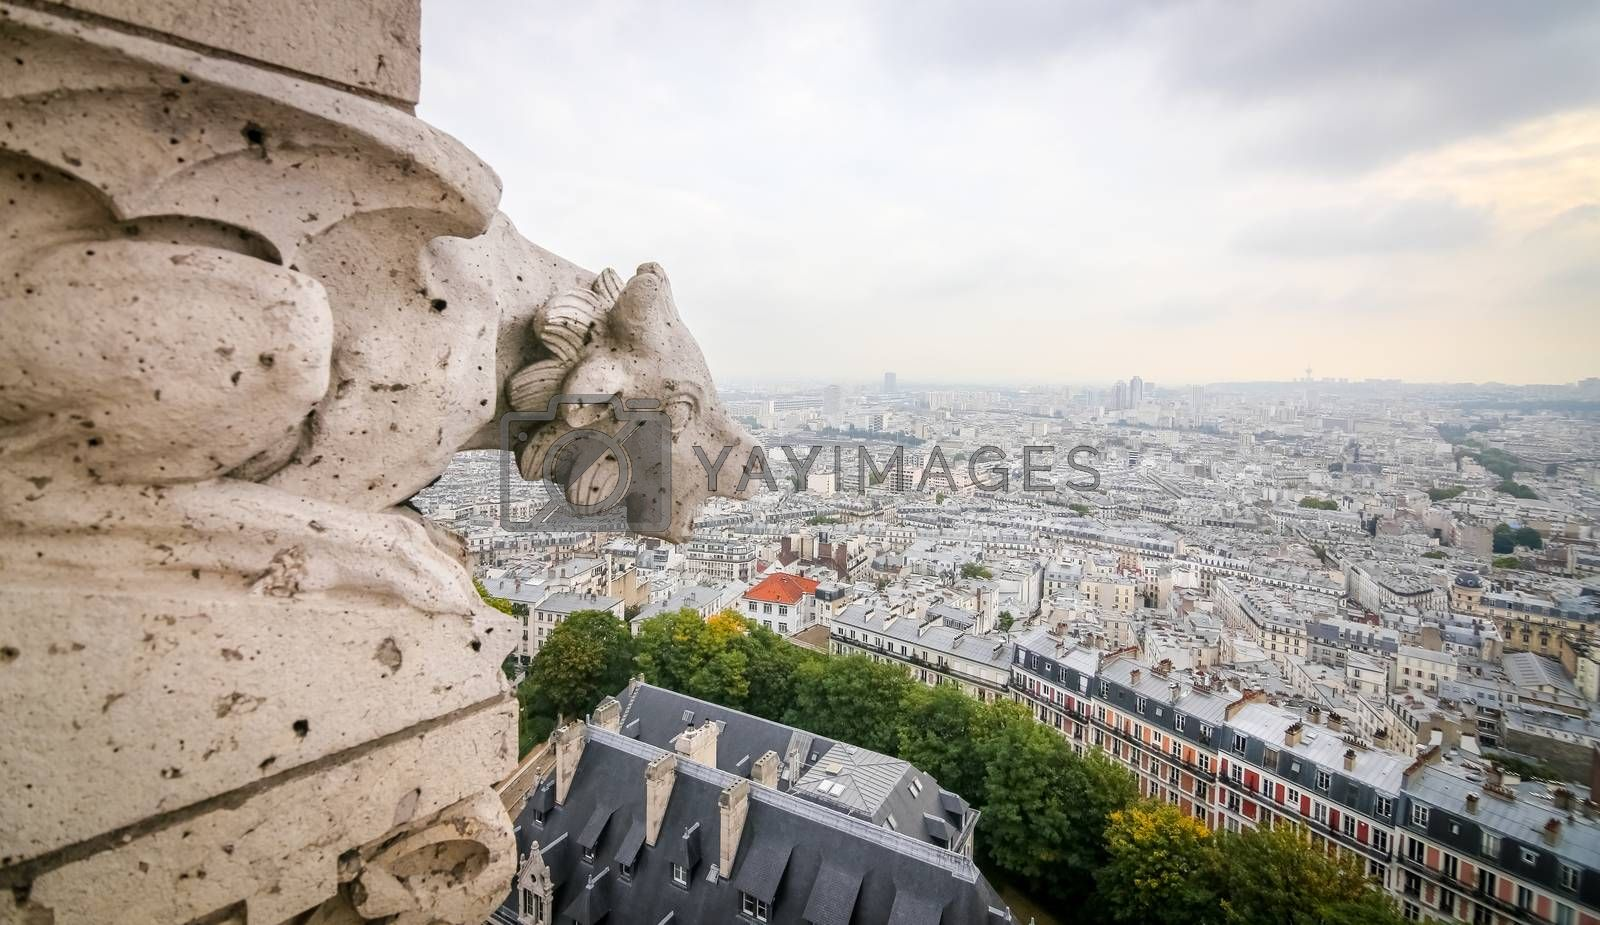 Paris View from Sacre Coeur Basilica by EvrenKalinbacak